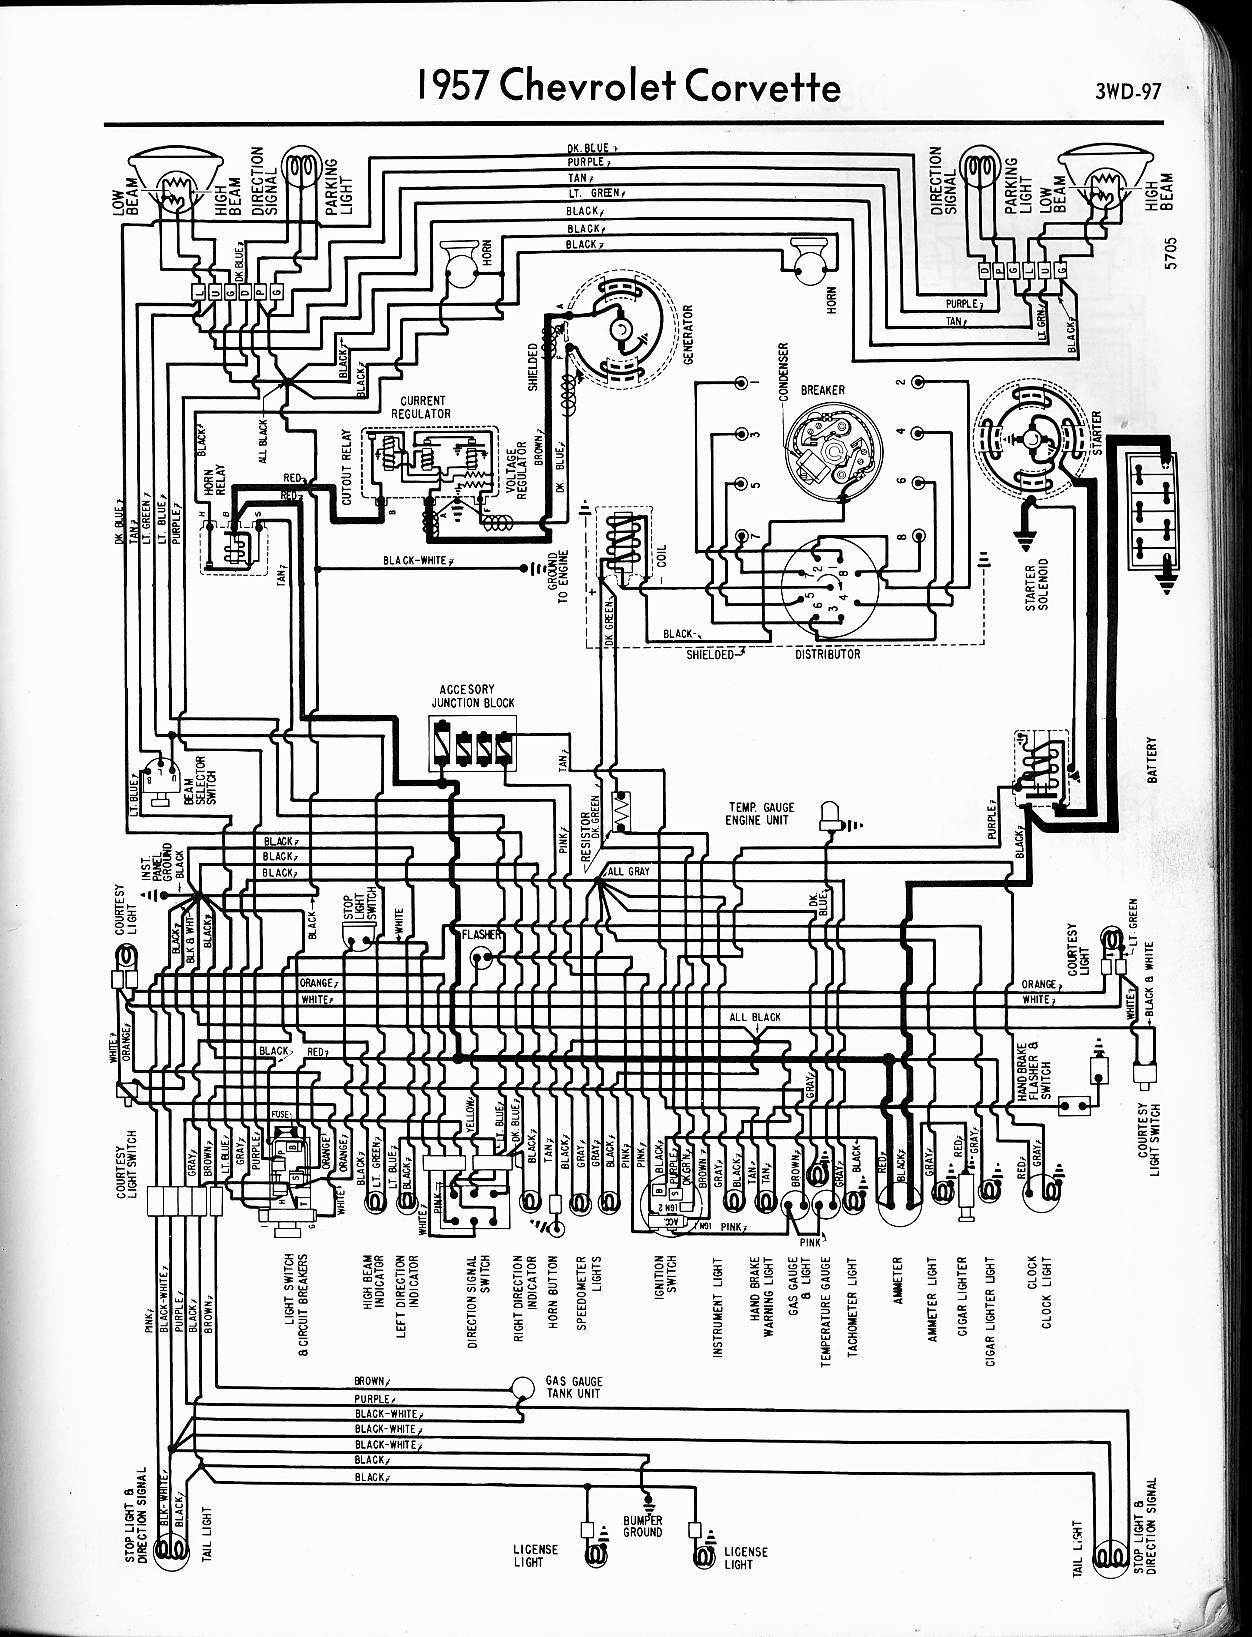 1964 impala generator wiring 57 65 chevy    wiring    diagrams  57 65 chevy    wiring    diagrams